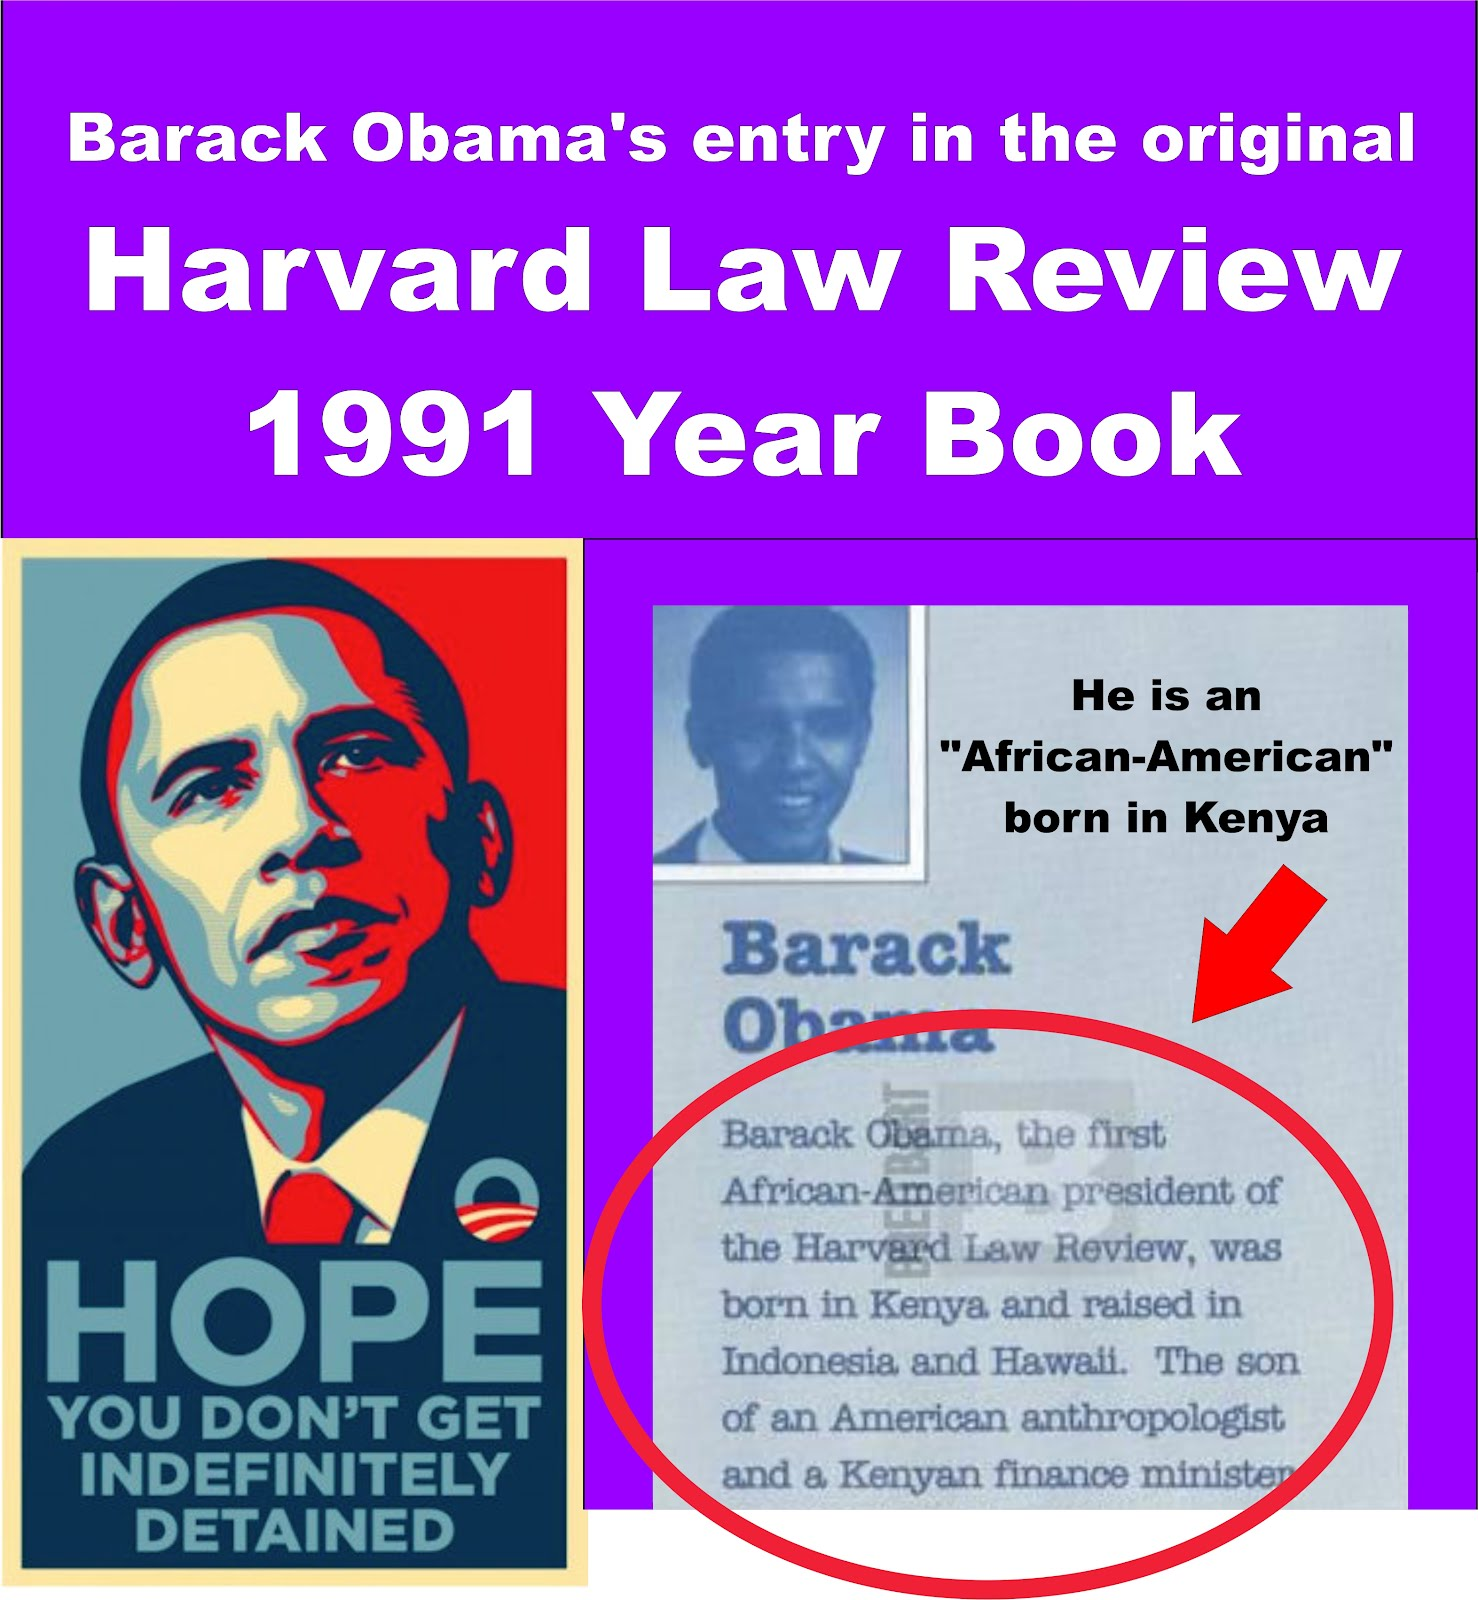 http://alcuinbramerton.blogspot.co.uk/2012/08/barack-obamas-official-biography-in.html